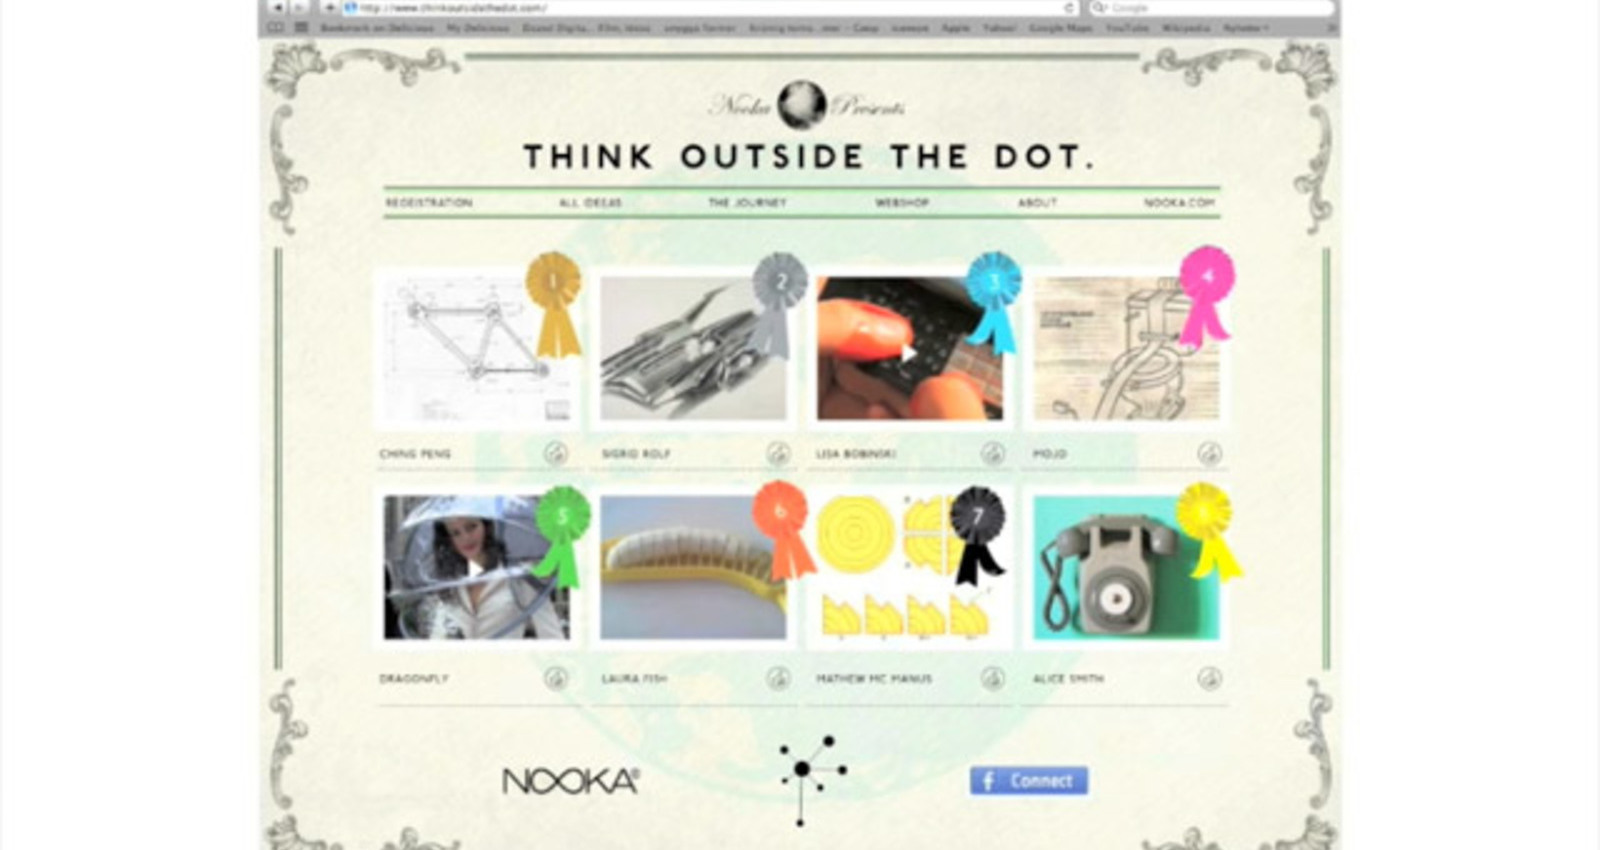 Think Outside the Dot